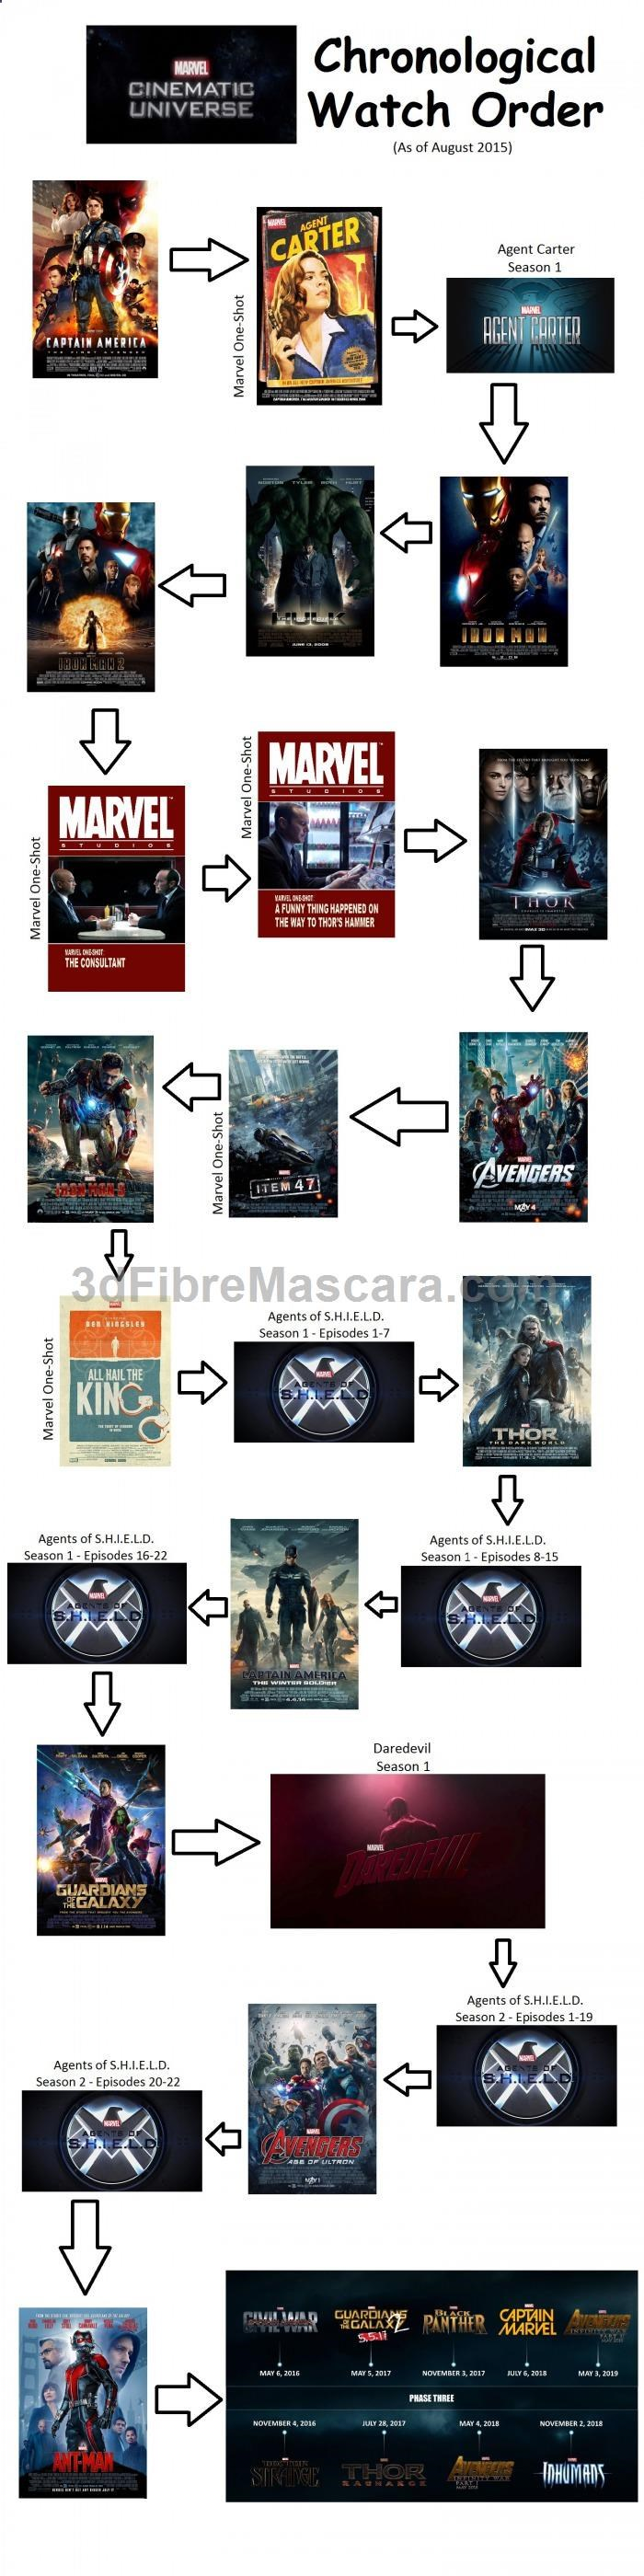 Graphic Shows How To Watch Every Marvel Cinematic Universe Film and TV Show in Chronological Order — GeekTyrant #movie #movies #newreleases #cinema #media #films #filmreviews #moviereviews #television #boxsets #dvds #tv #tvshows #tvseries #newseasons #season1 #season2 #season3 #season4 #season5